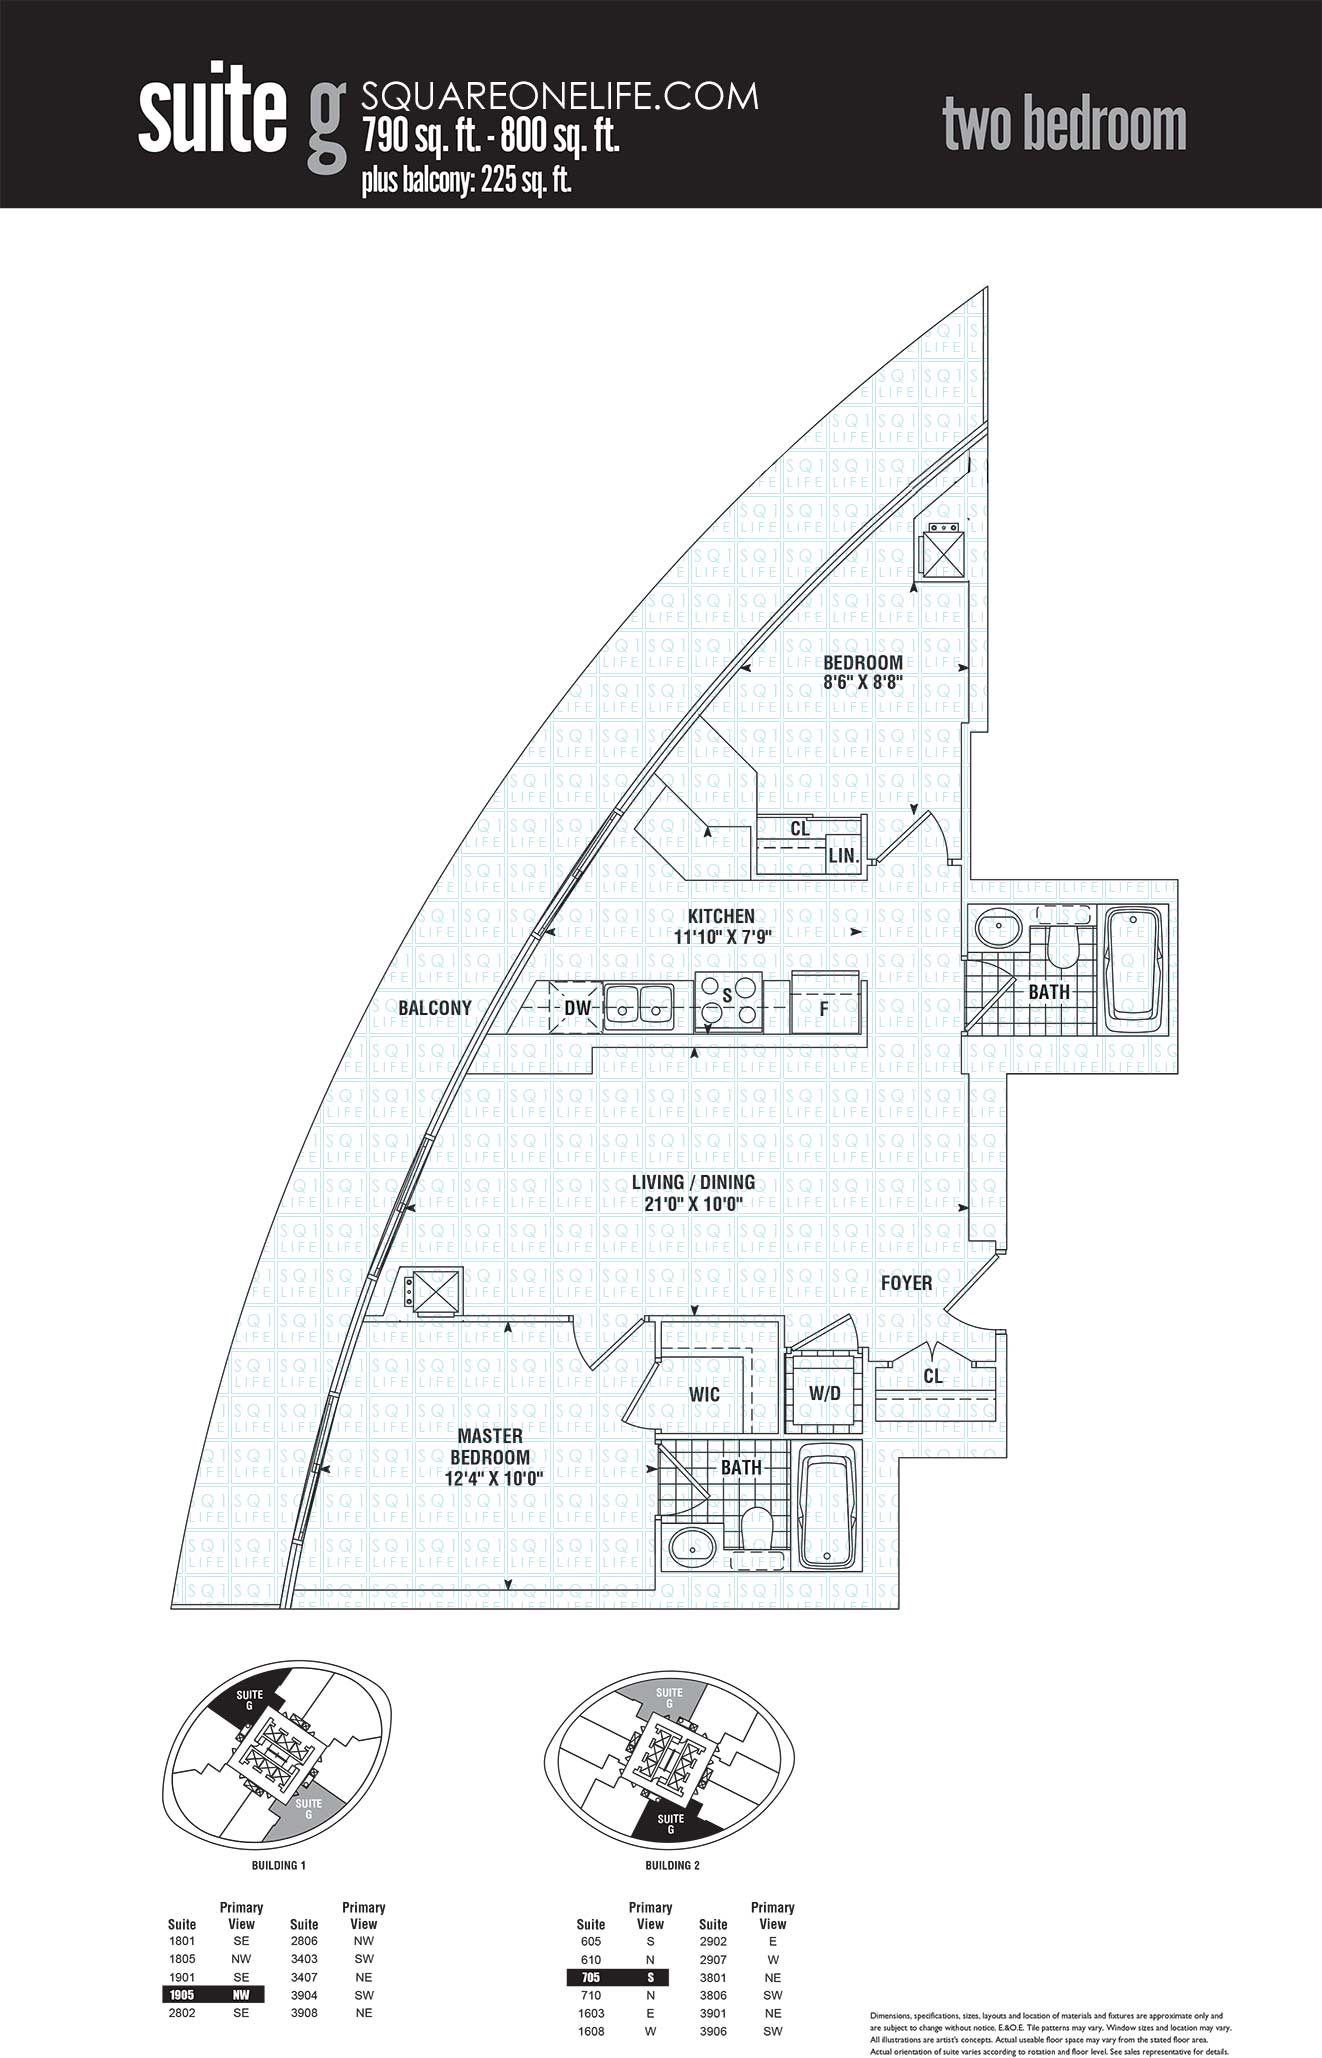 50-Absolute-60-Absolute-Condos-Floorplan-Suite-G-2-Bed-2-Bath marilyn monroe condos Marilyn Monroe Condos 50 Absolute 60 Absolute Condos Floorplan Suite G 2 Bed 2 Bath